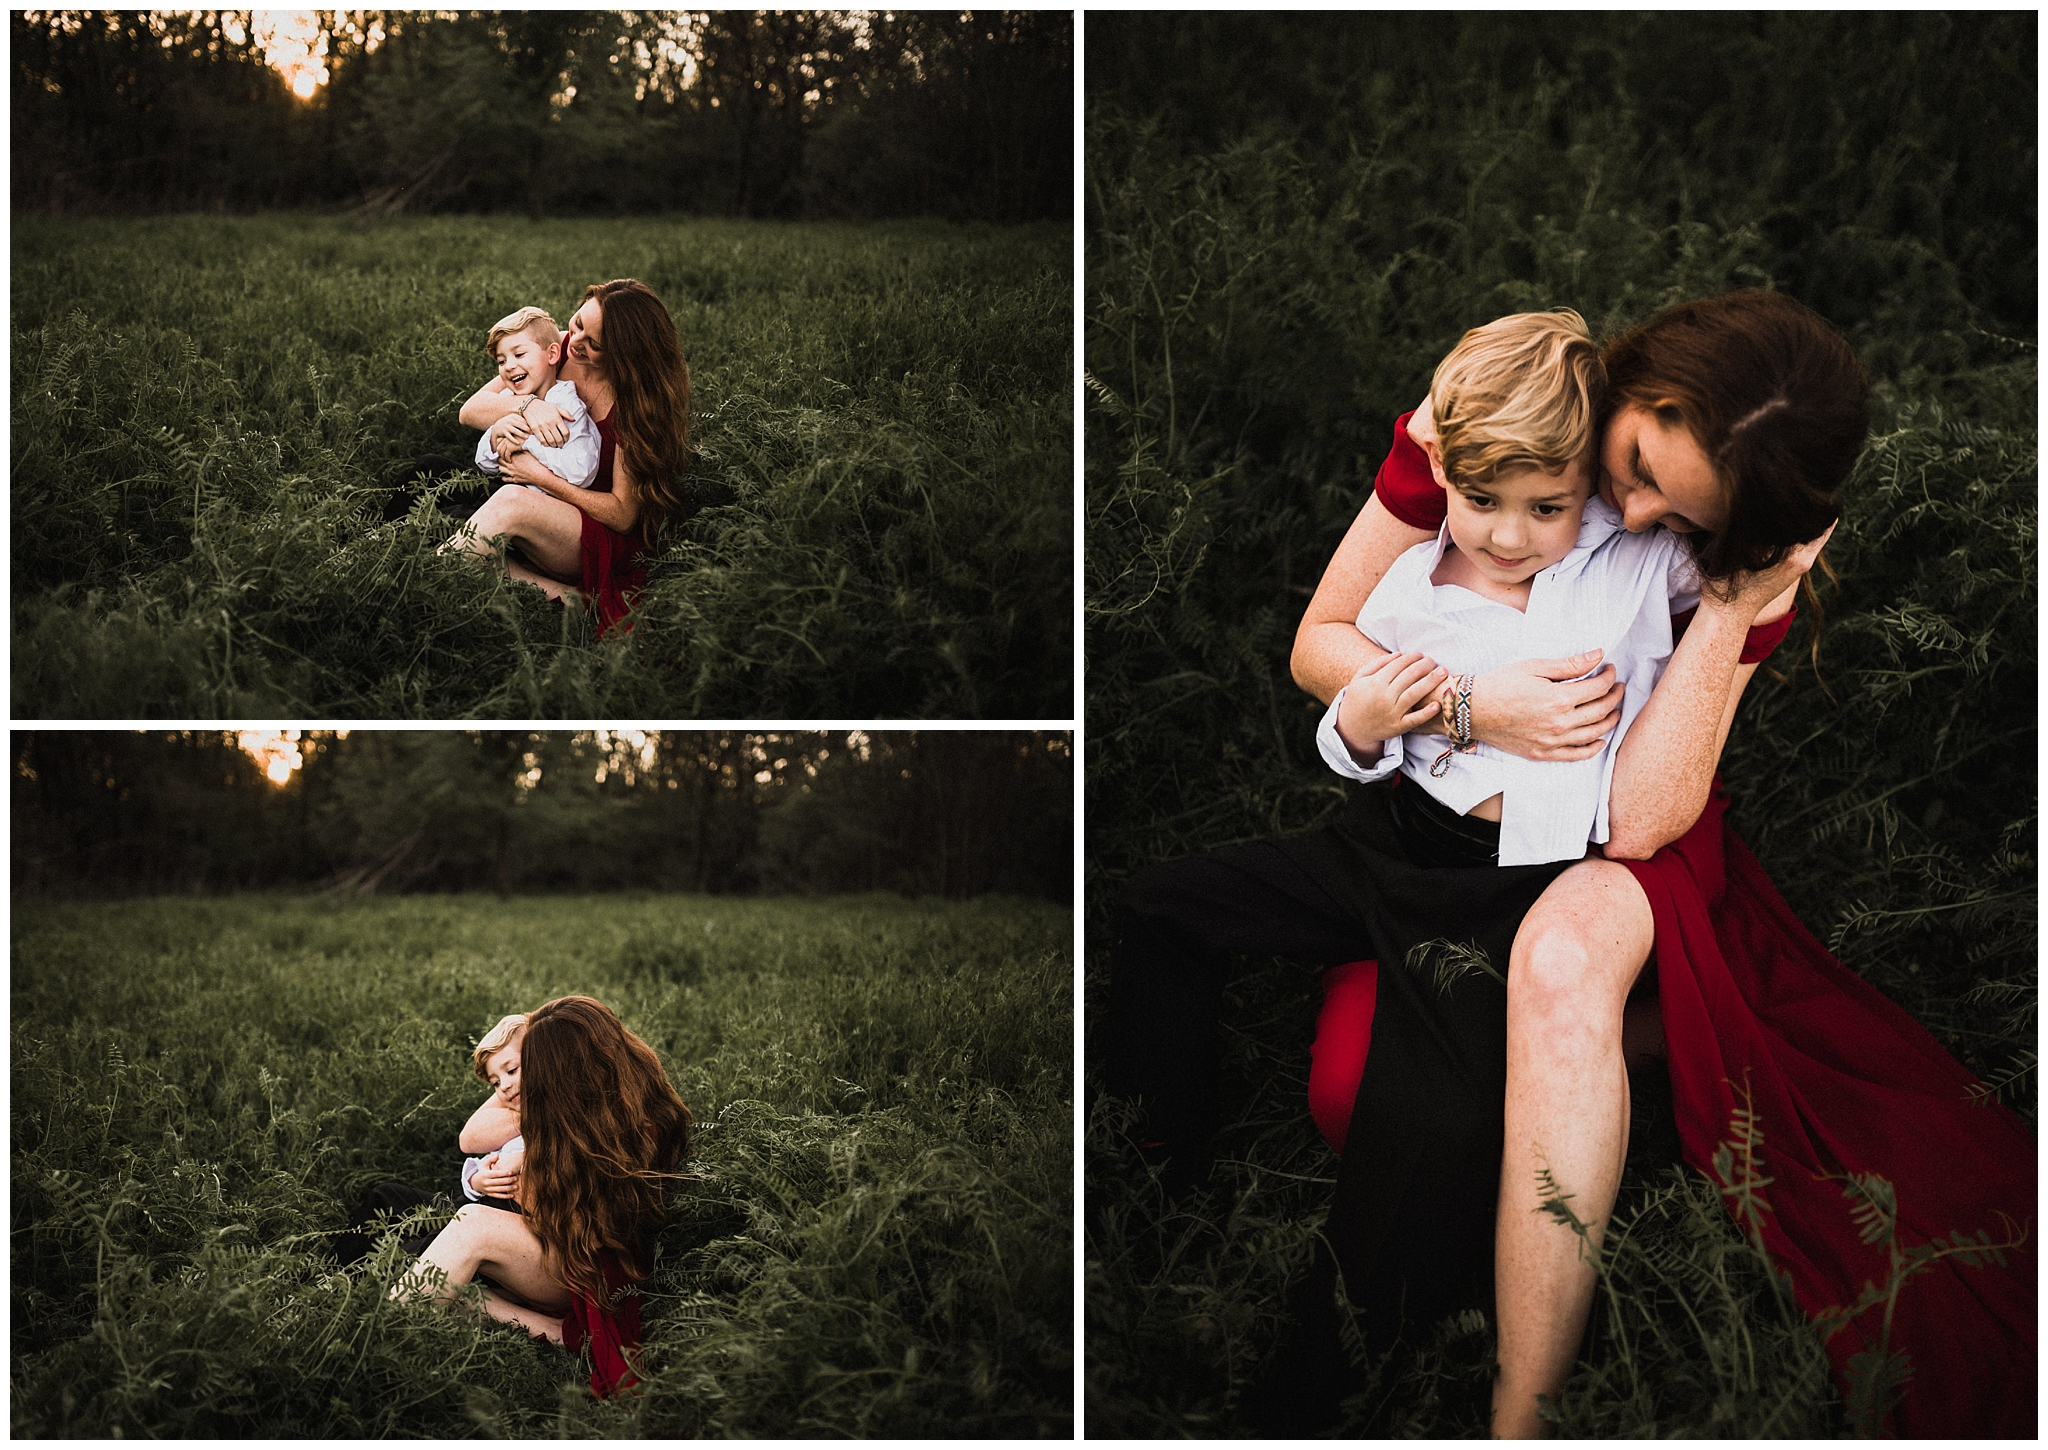 twyla jones photography | south florida family photographer | mother son session in a meadow-20160420-_TDJ4018.jpg